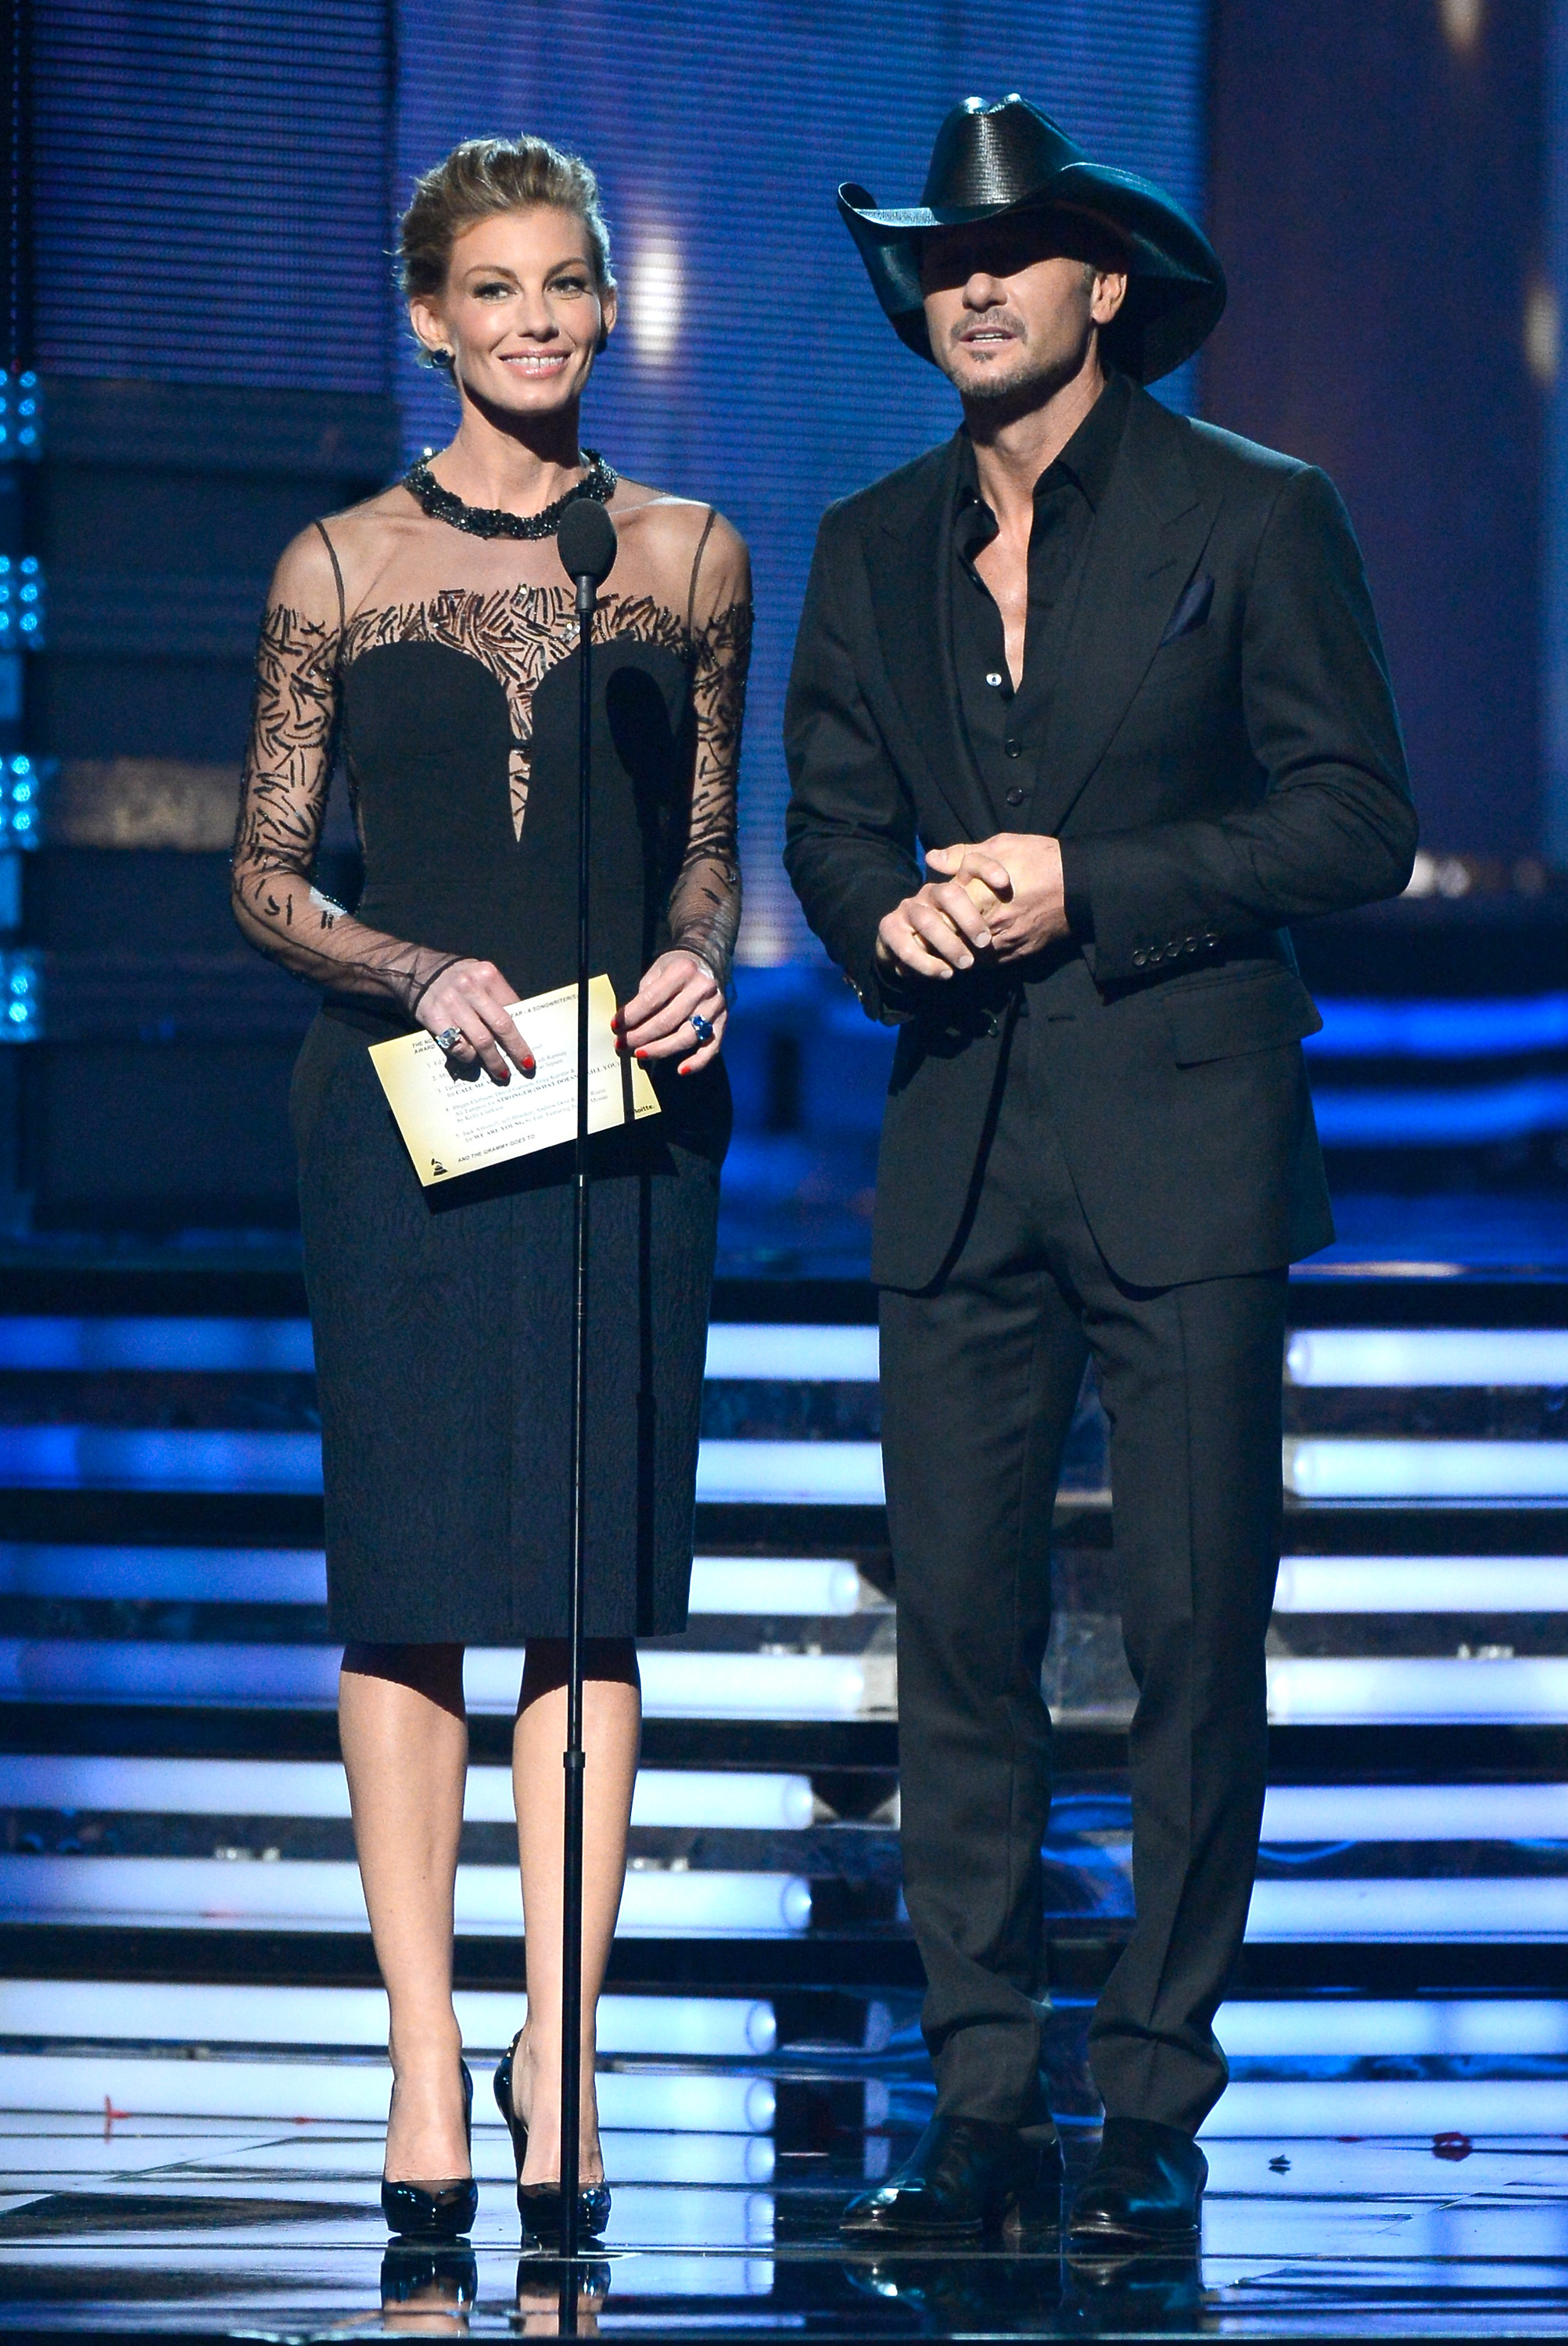 Faith Hill and Tim McGraw took the stage together.